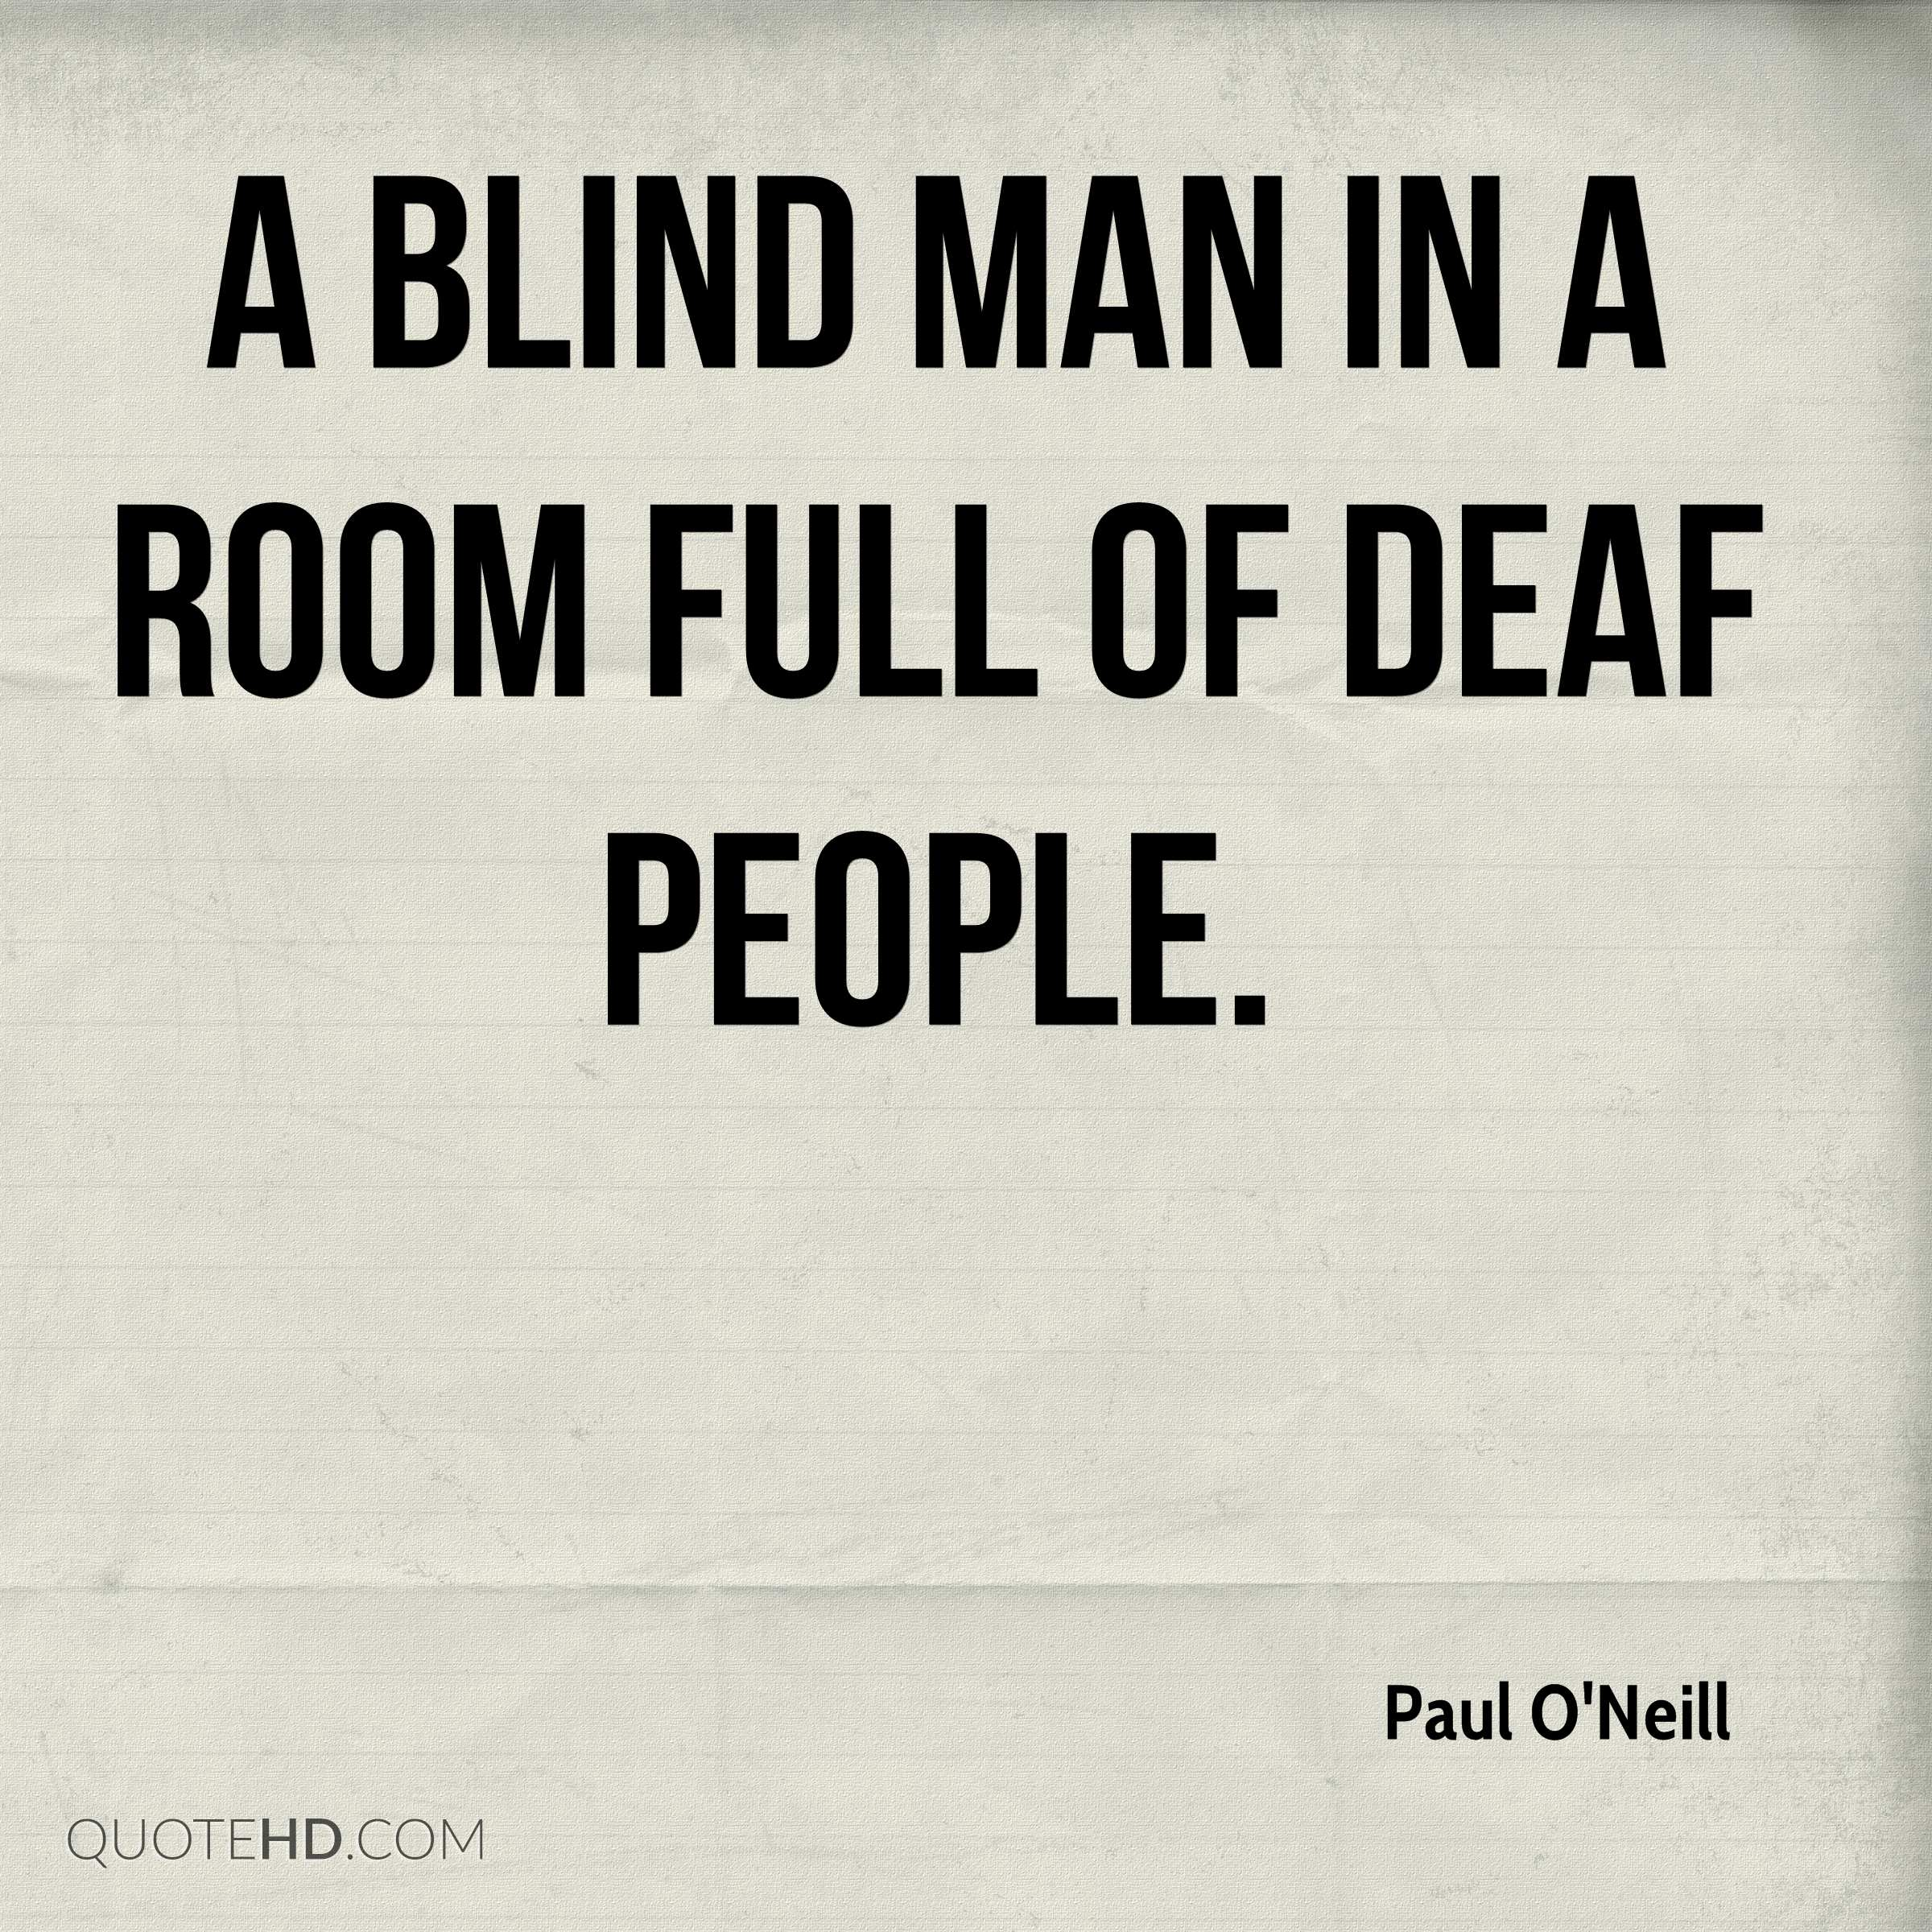 Blind Quotes Paul O'neill Quotes  Quotehd